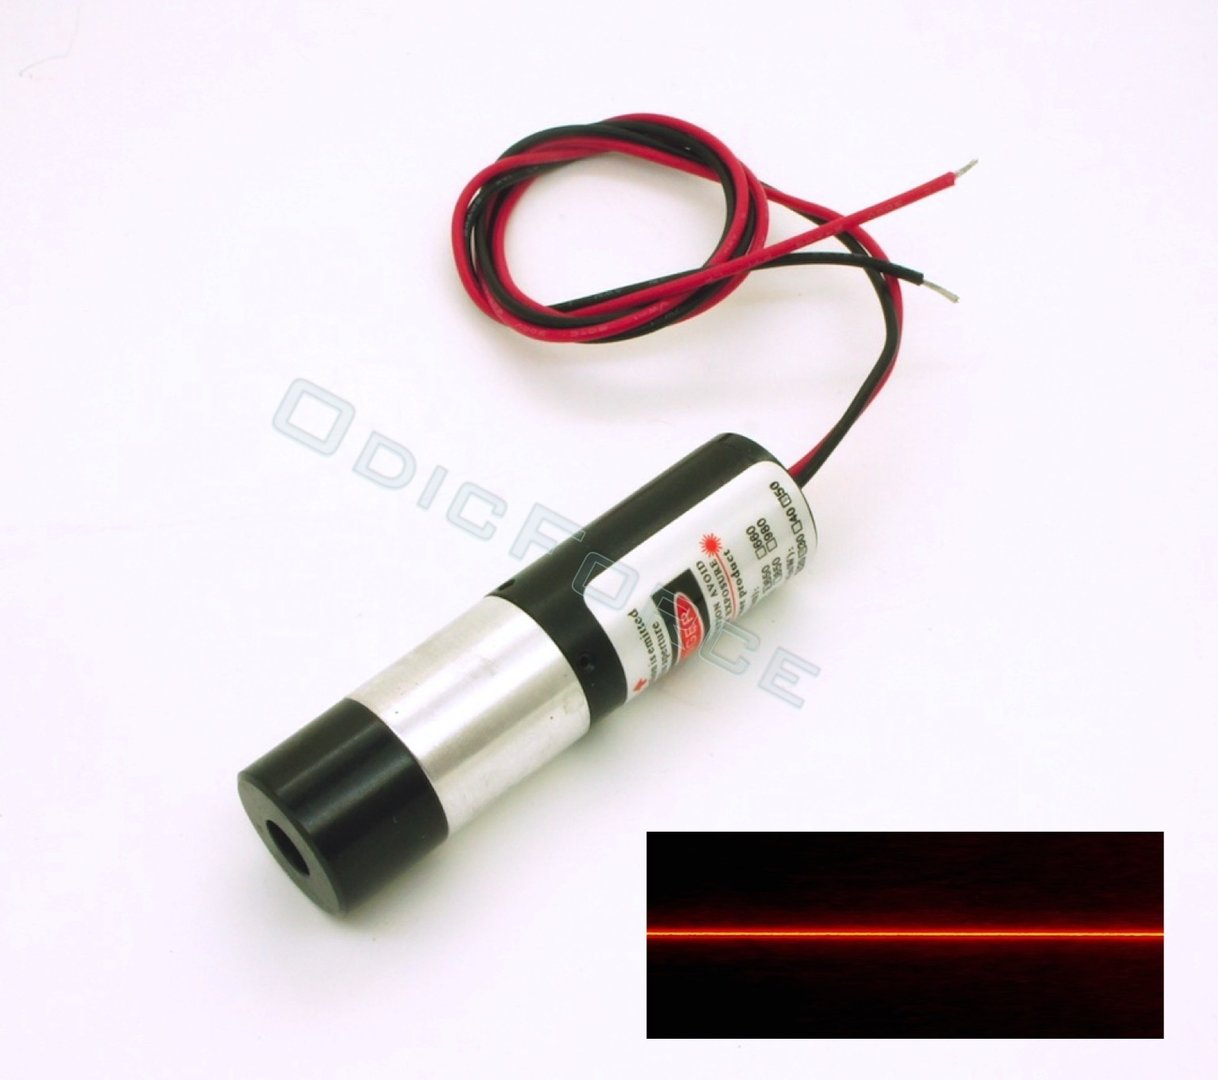 5mW Red (650nm)  Precision Line Laser Modules with Powell Lens 60 Degree Fan Angle